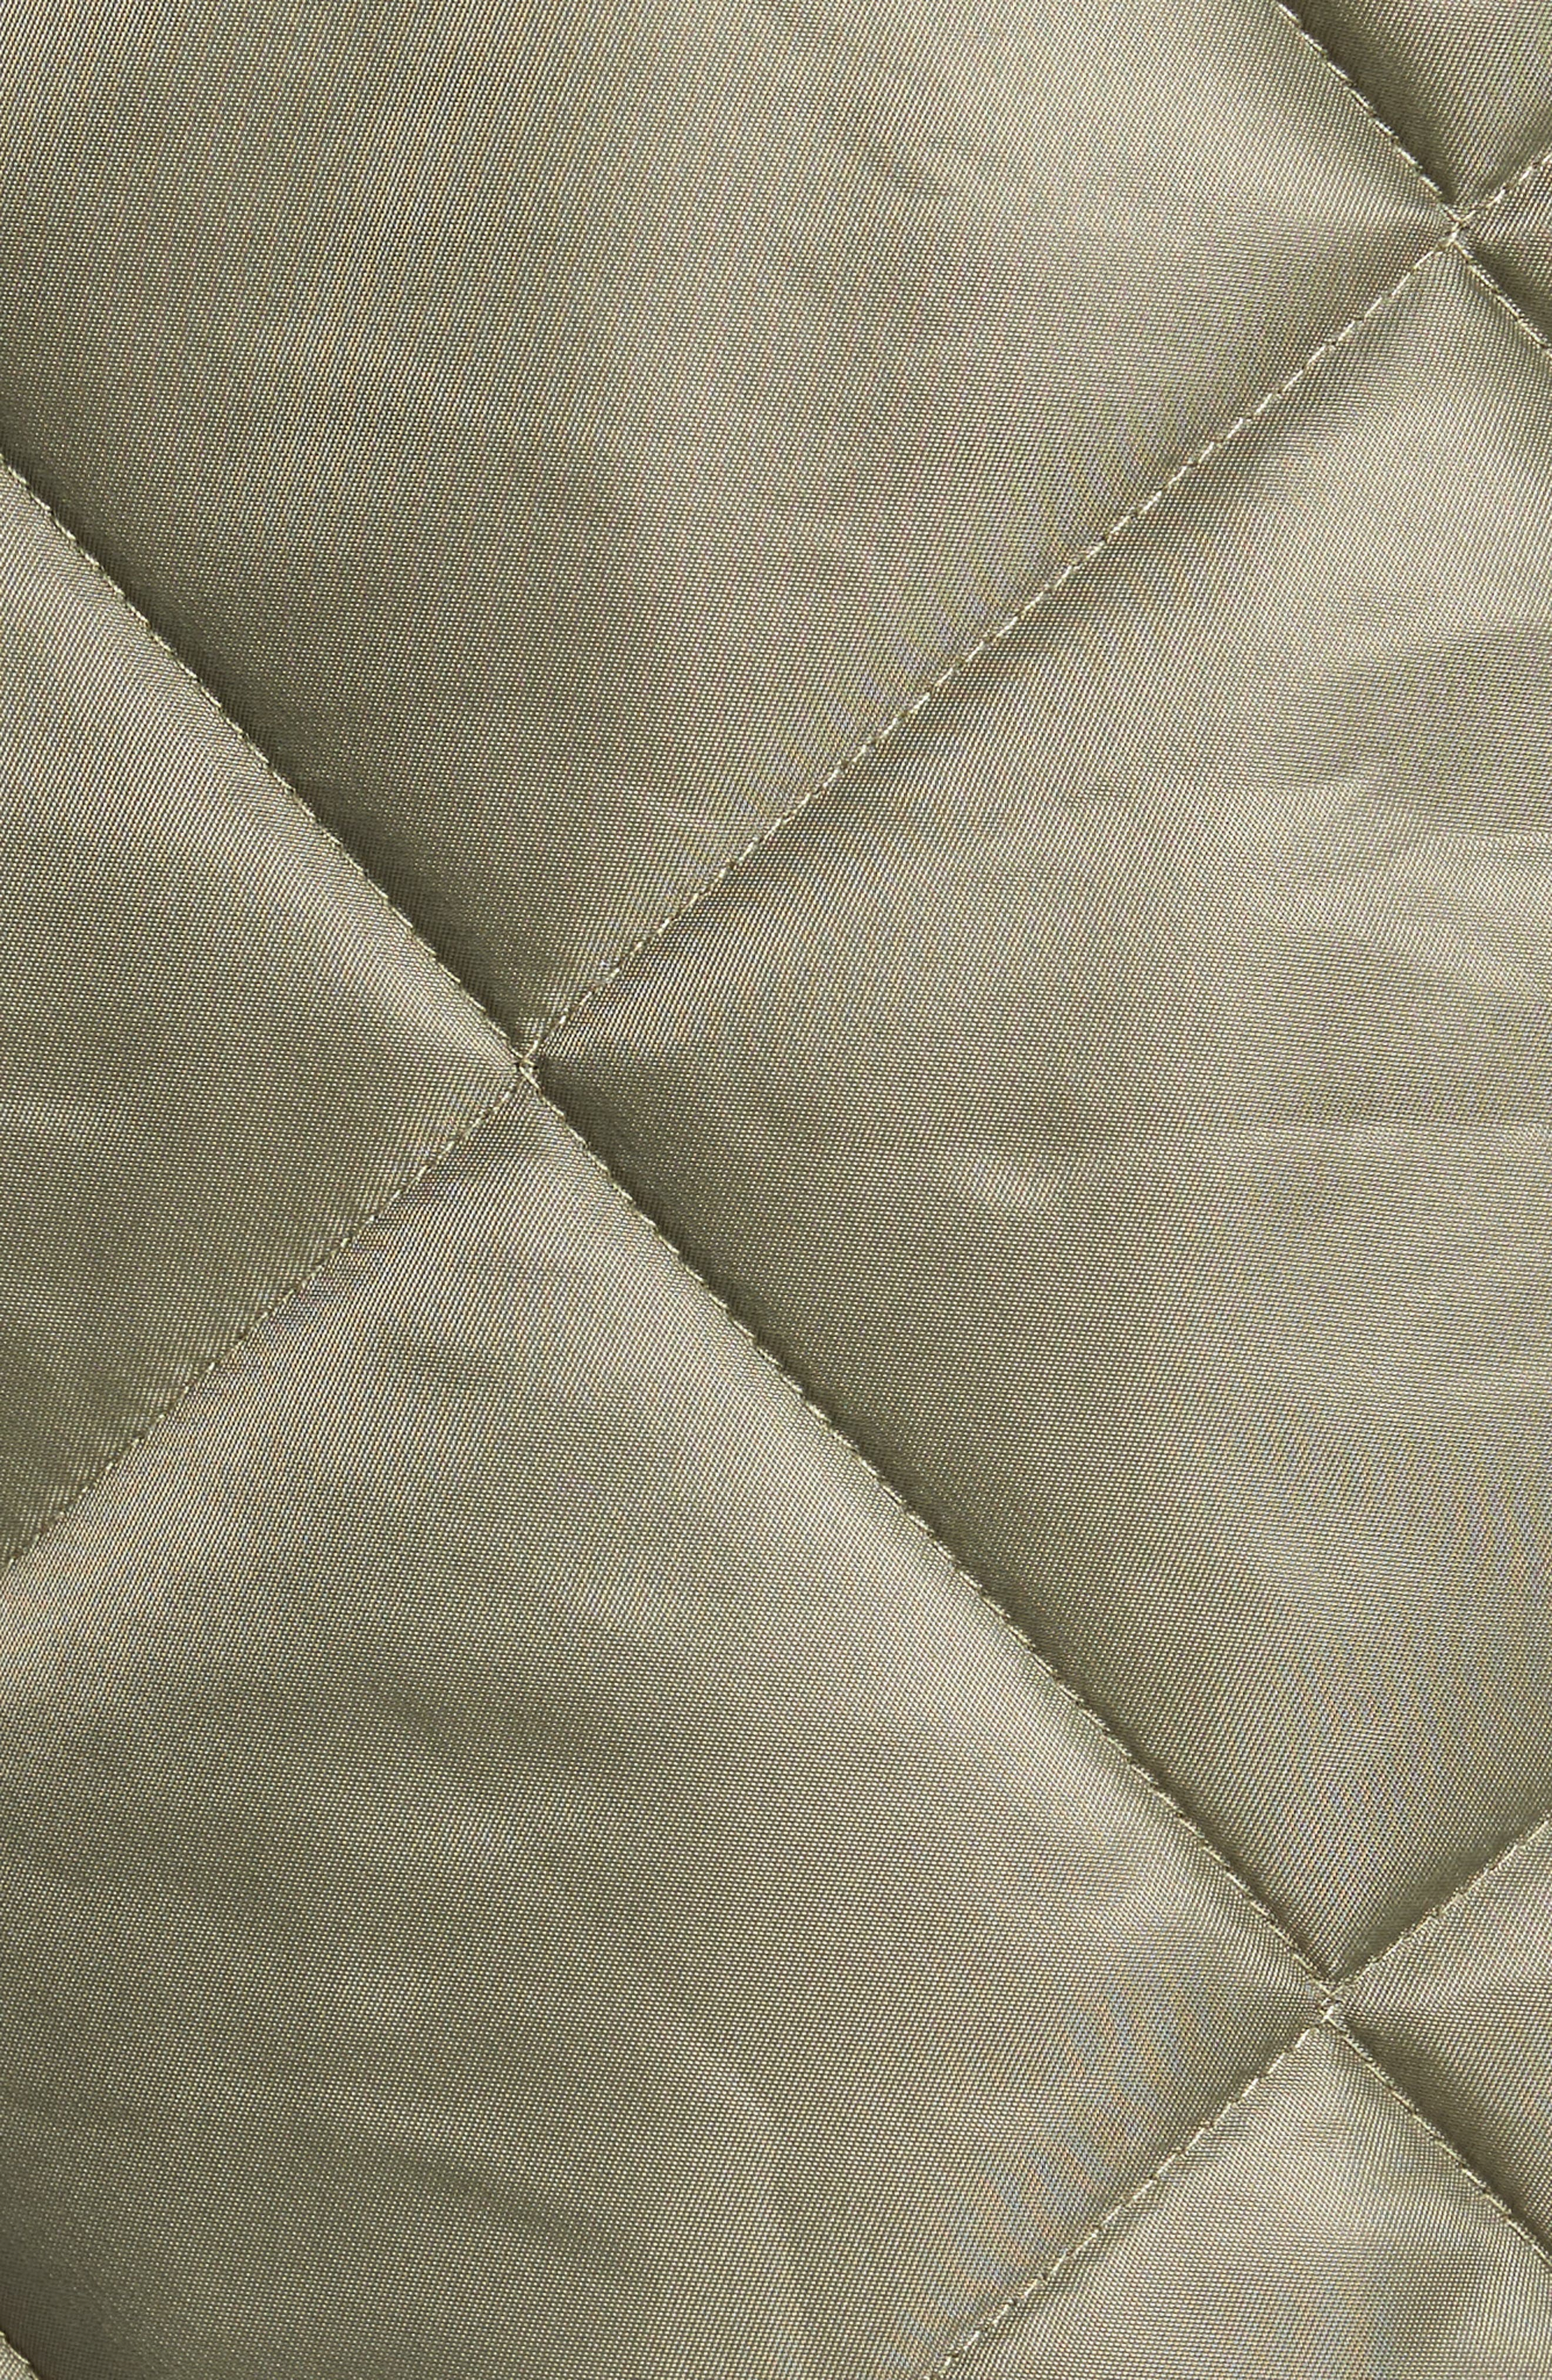 Quilted Bomber Jacket,                             Alternate thumbnail 6, color,                             315